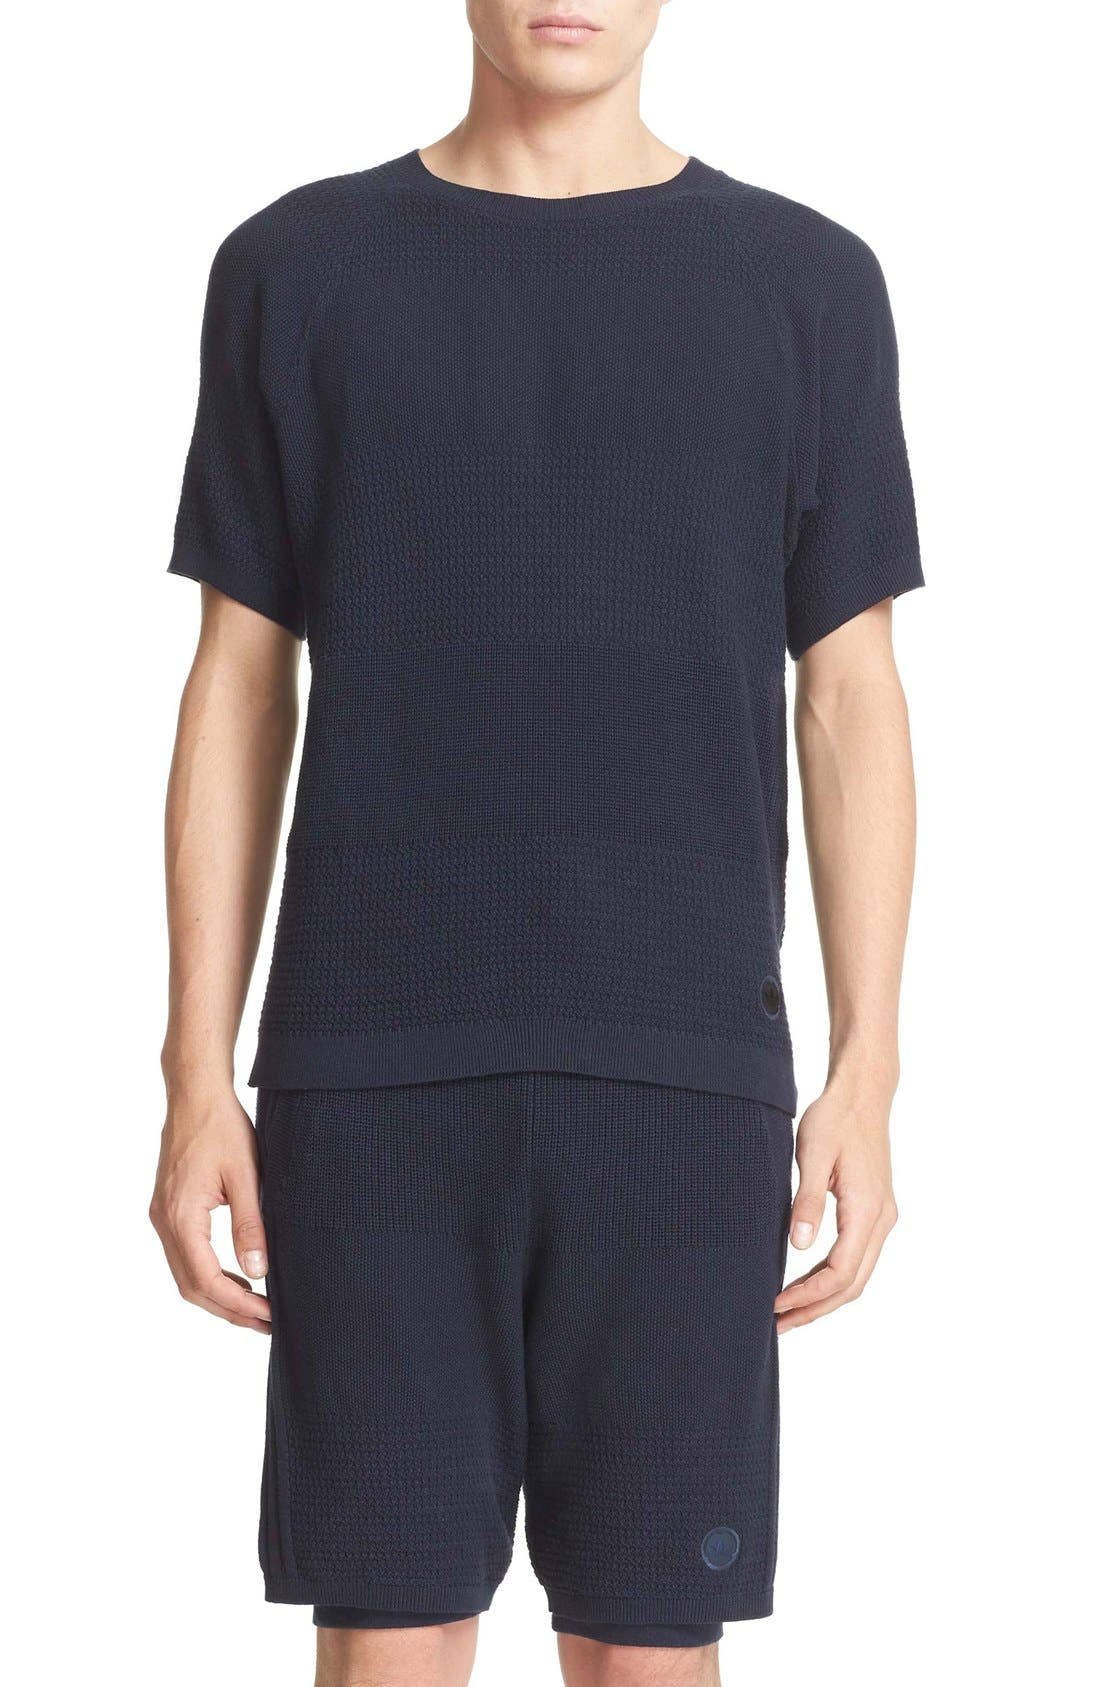 wings + horns x adidas Linear Cotton & Linen T-Shirt